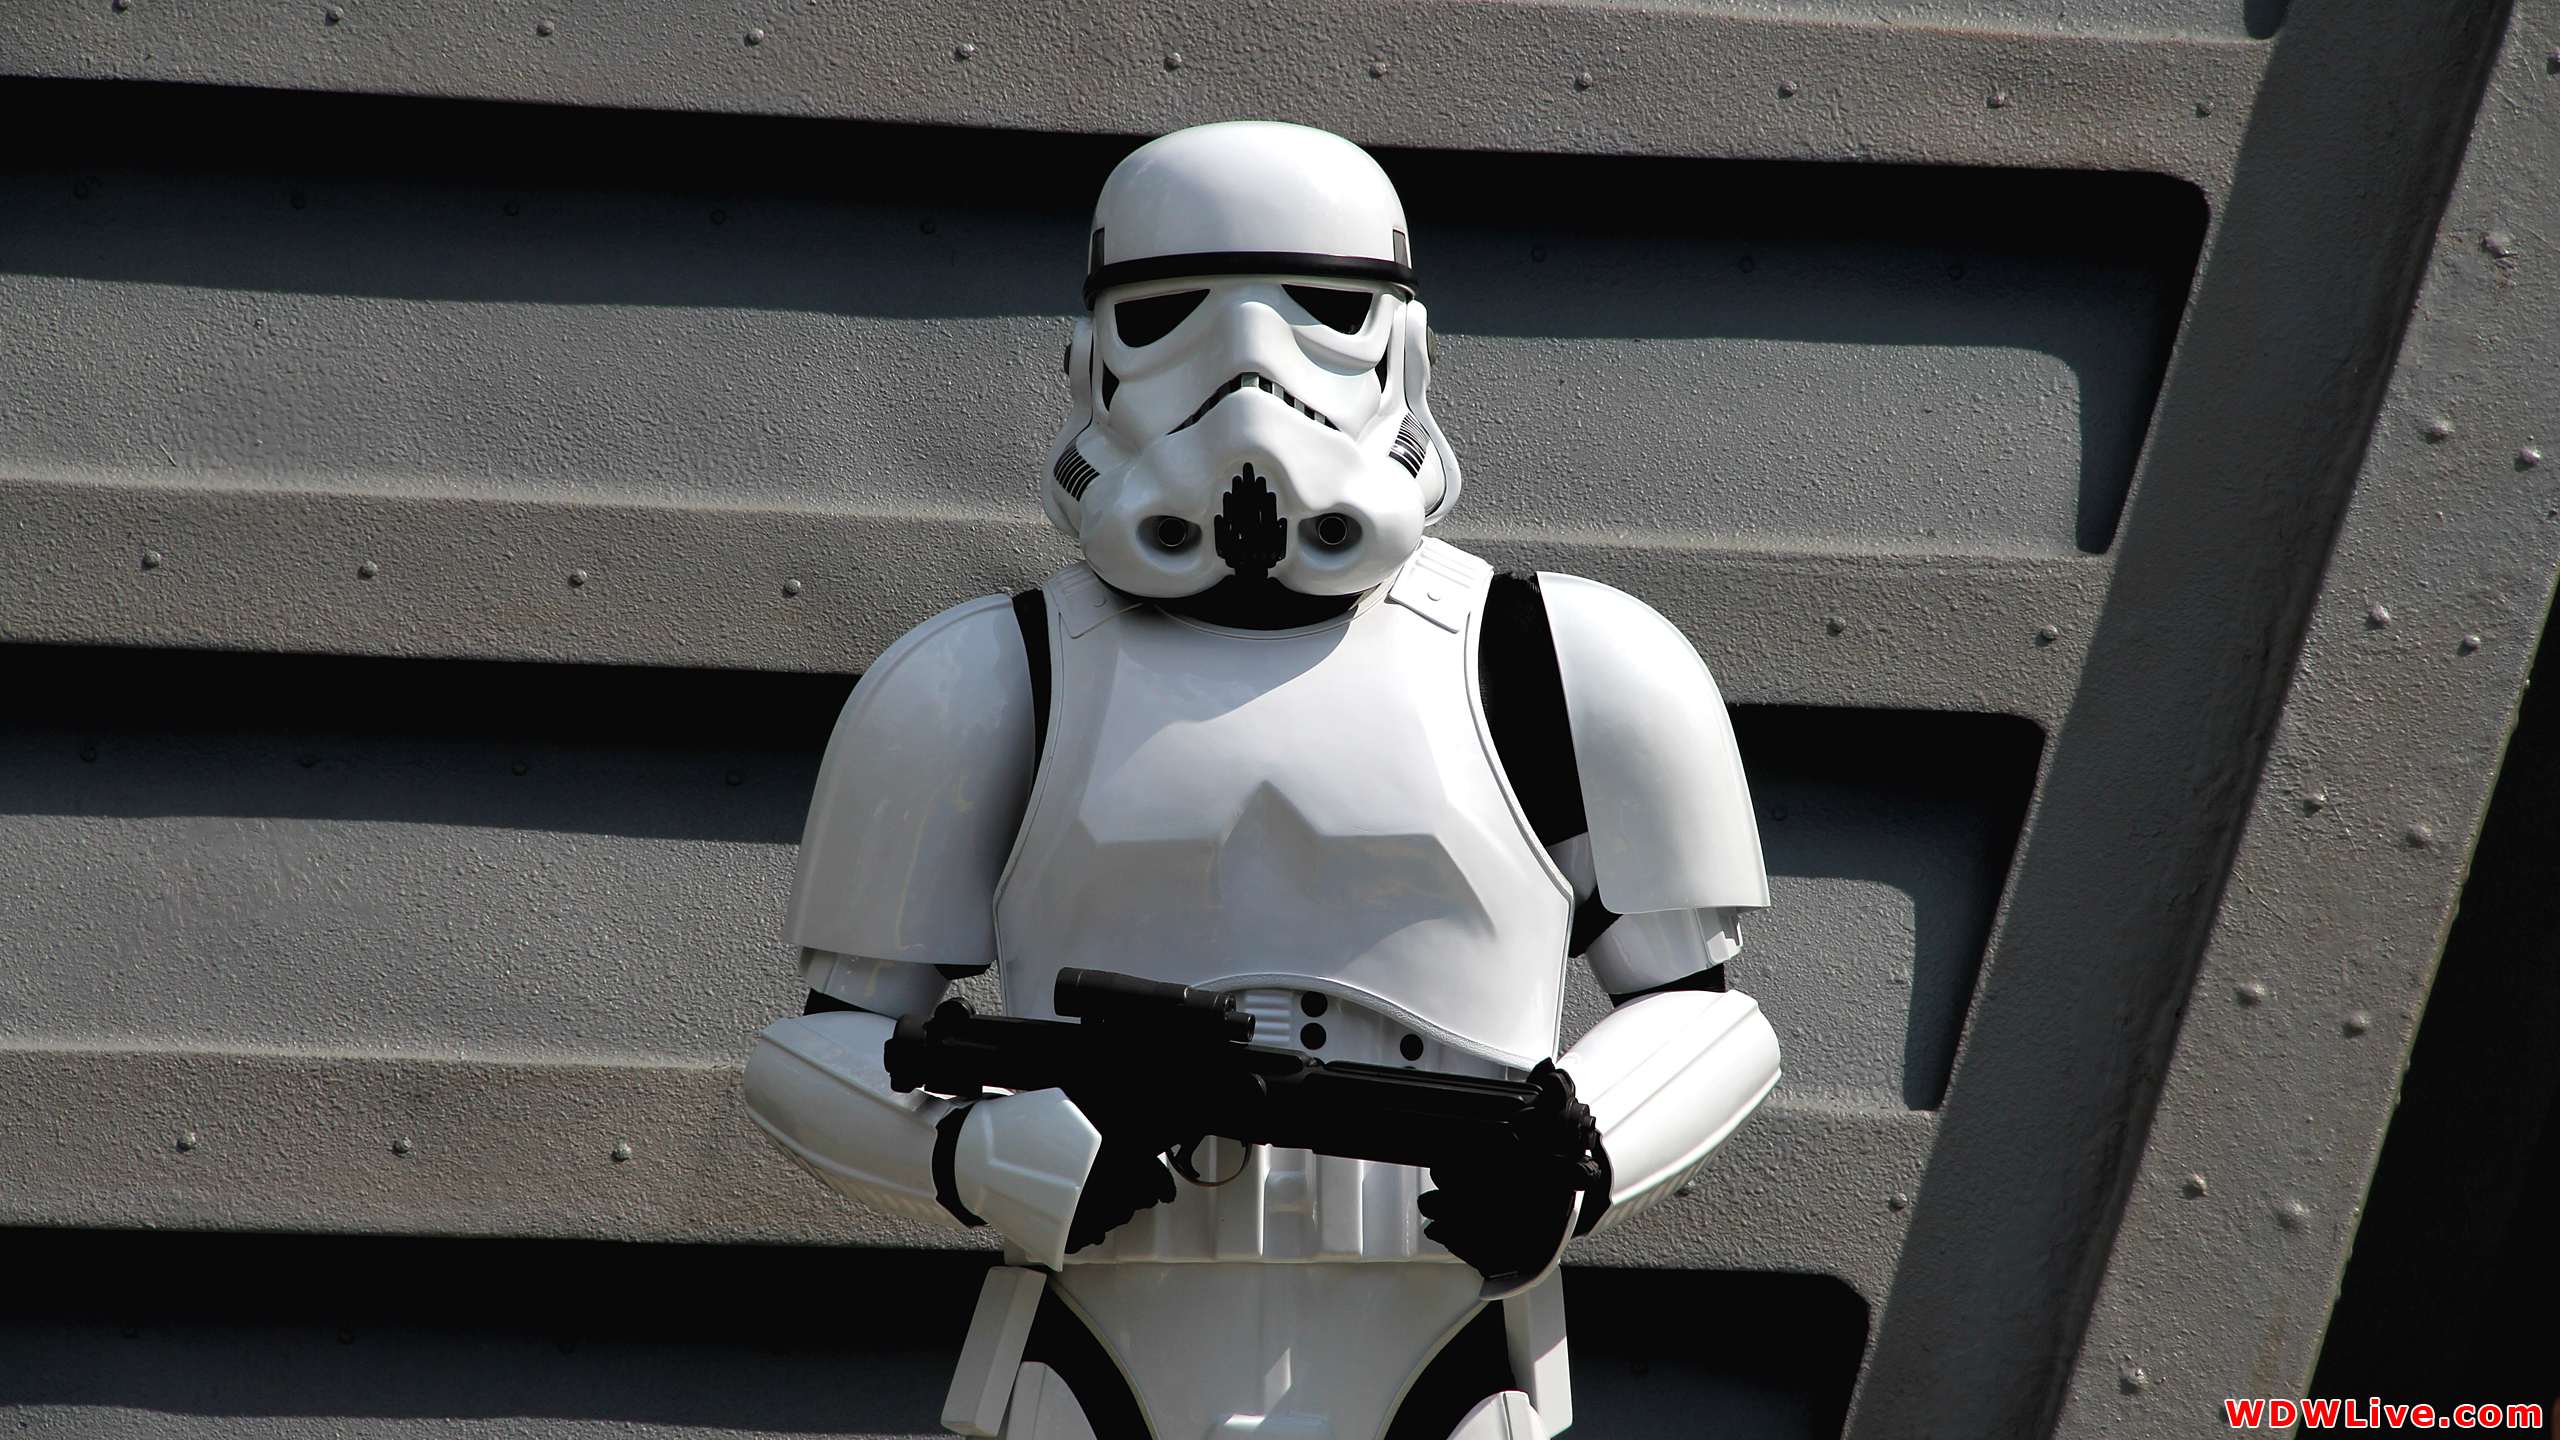 Free Download Star Wars Stormtrooper Wallpaper 1303838 2560x1440